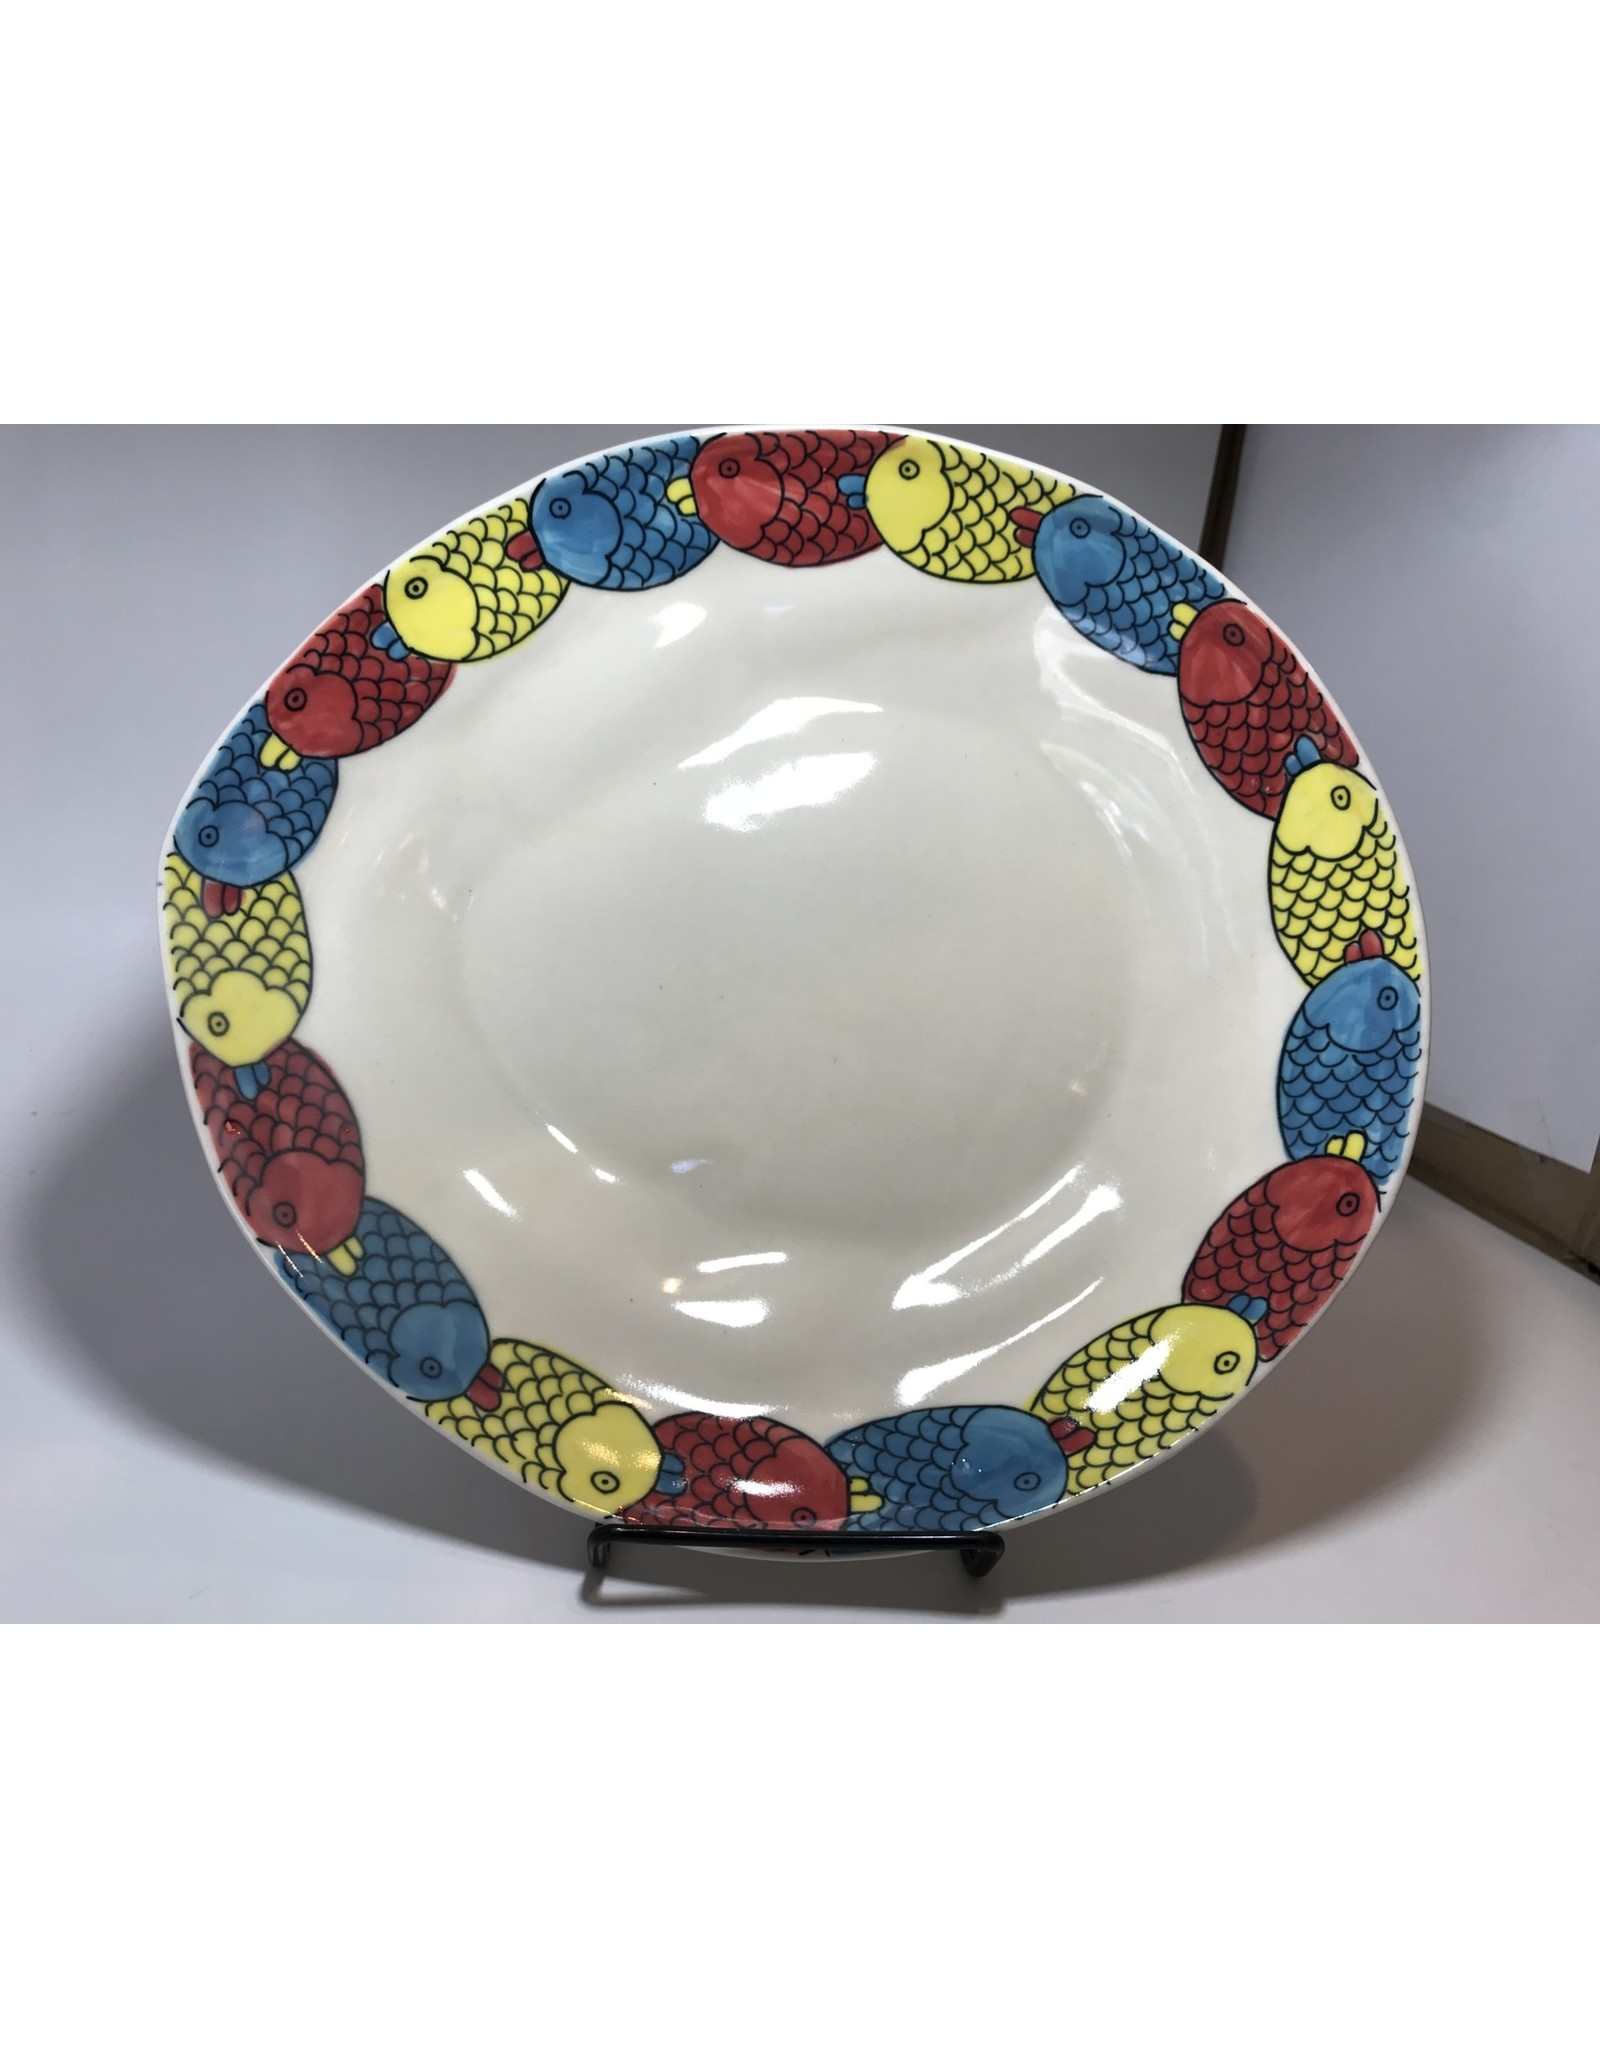 Ceramic Serving Platter, Fish